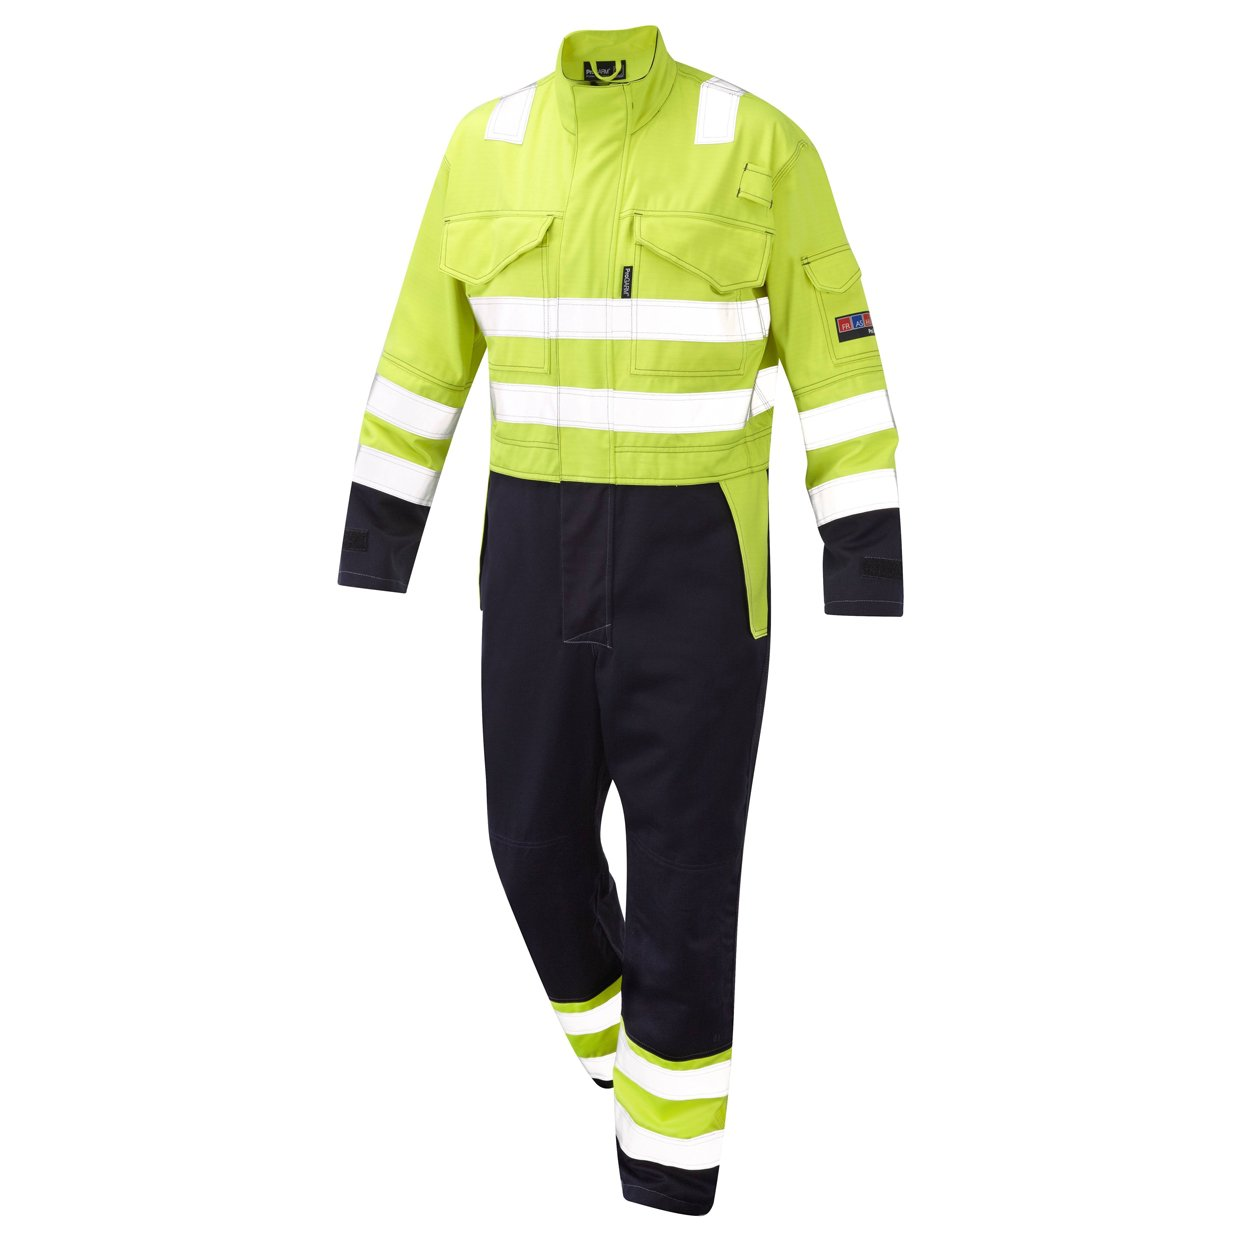 3580249a0852 Arc Flash Coveralls Archives - SUBSTATION-SAFETY.com